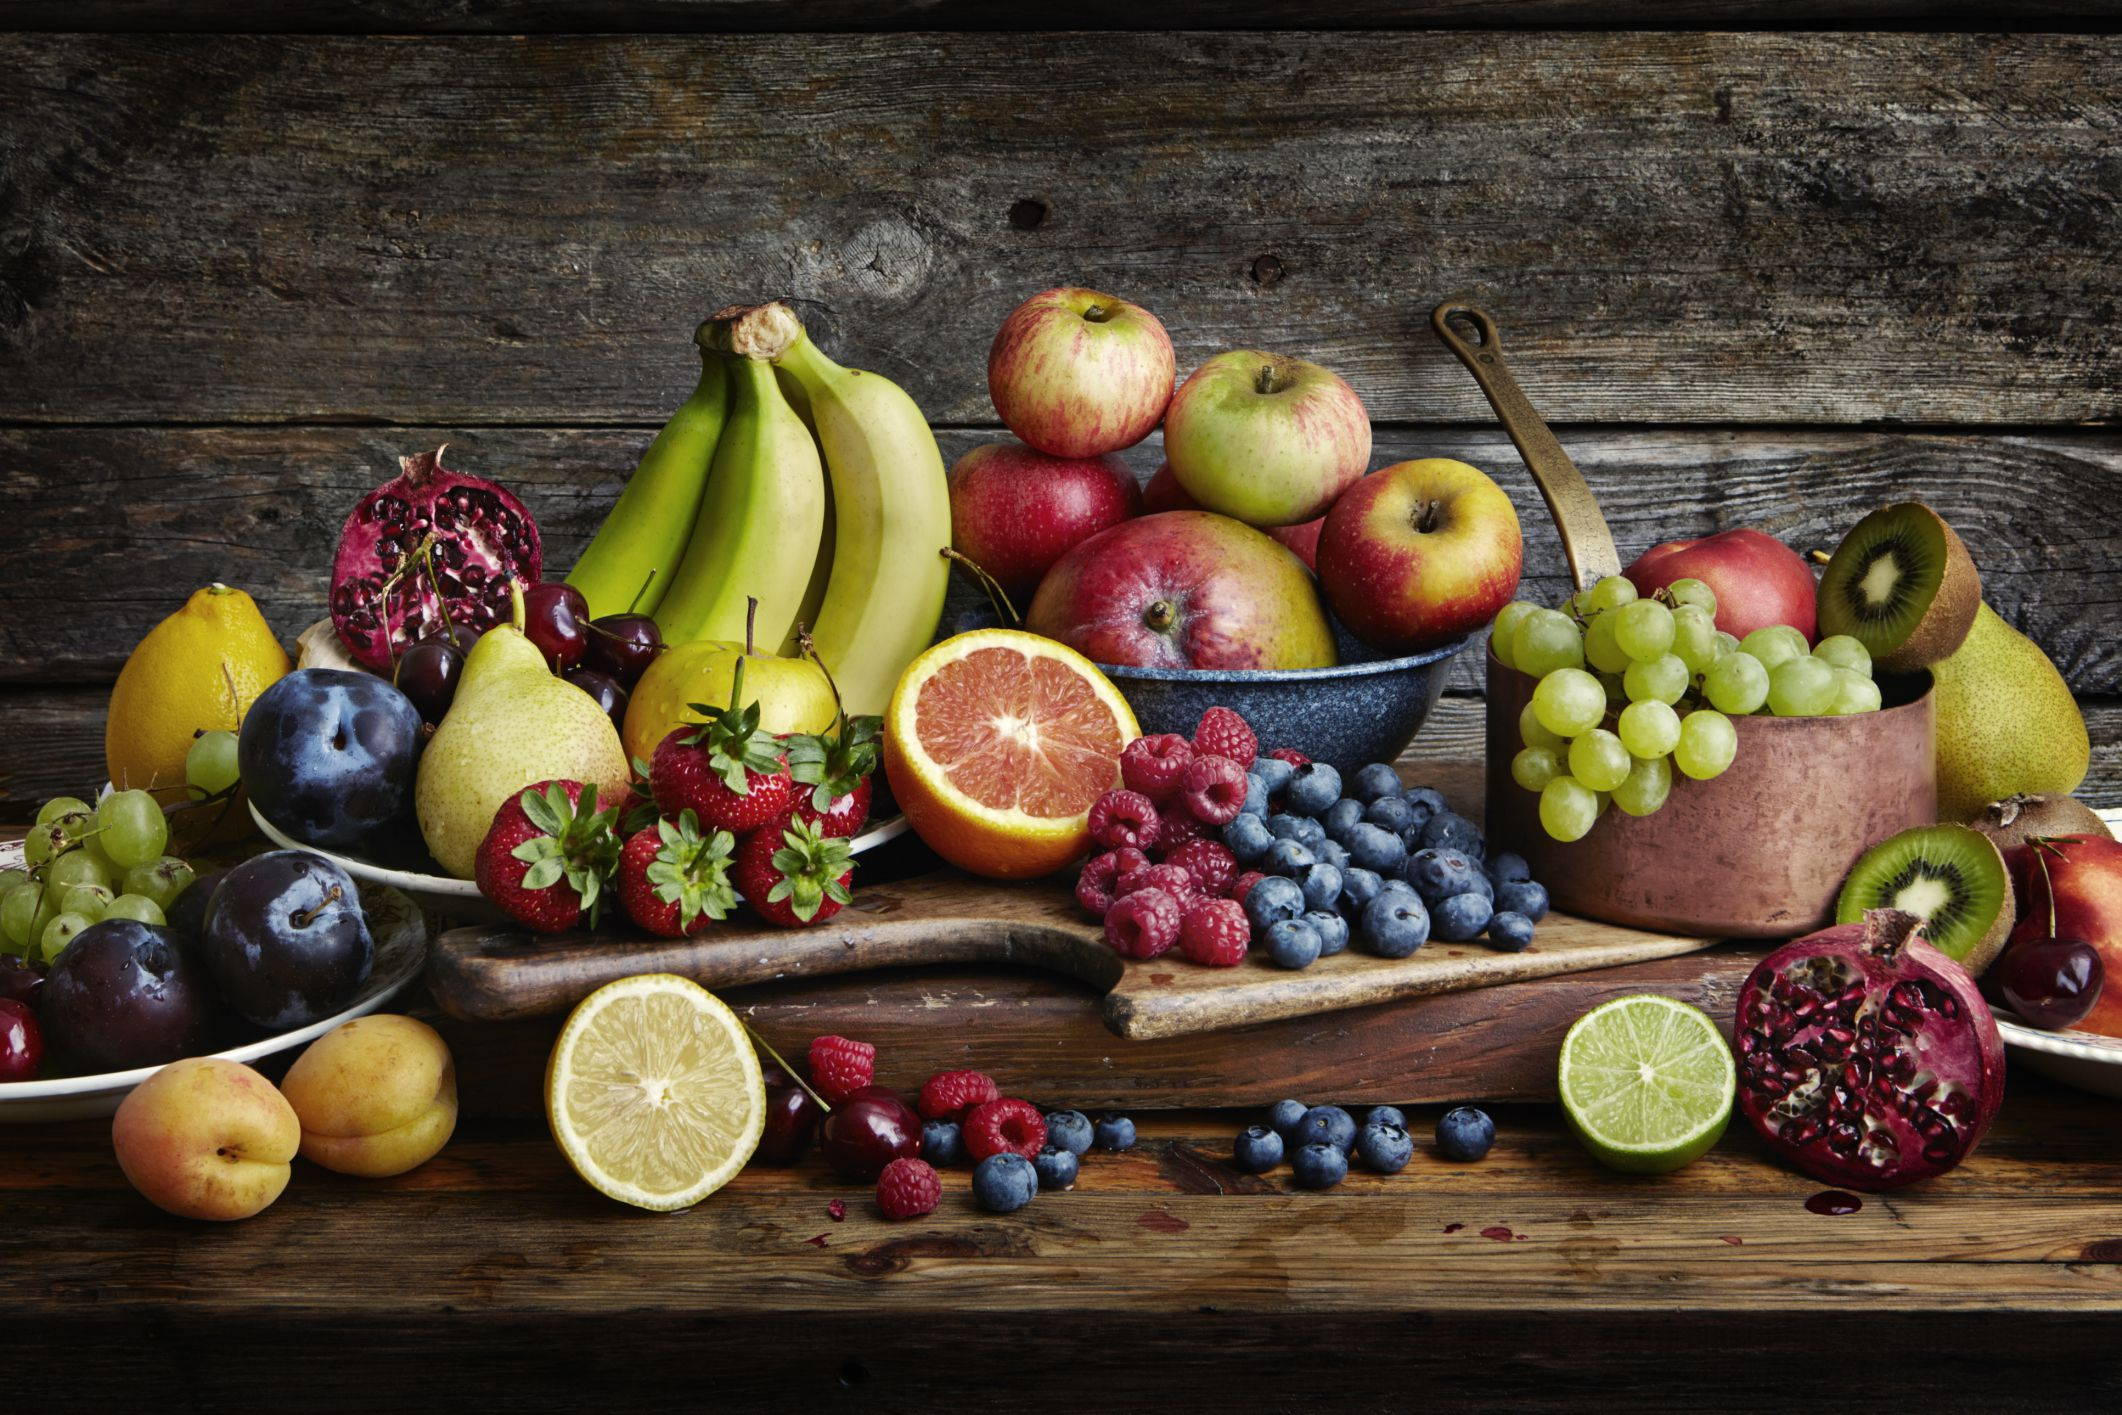 7 Fruits to Avoid If You Have Diabetes